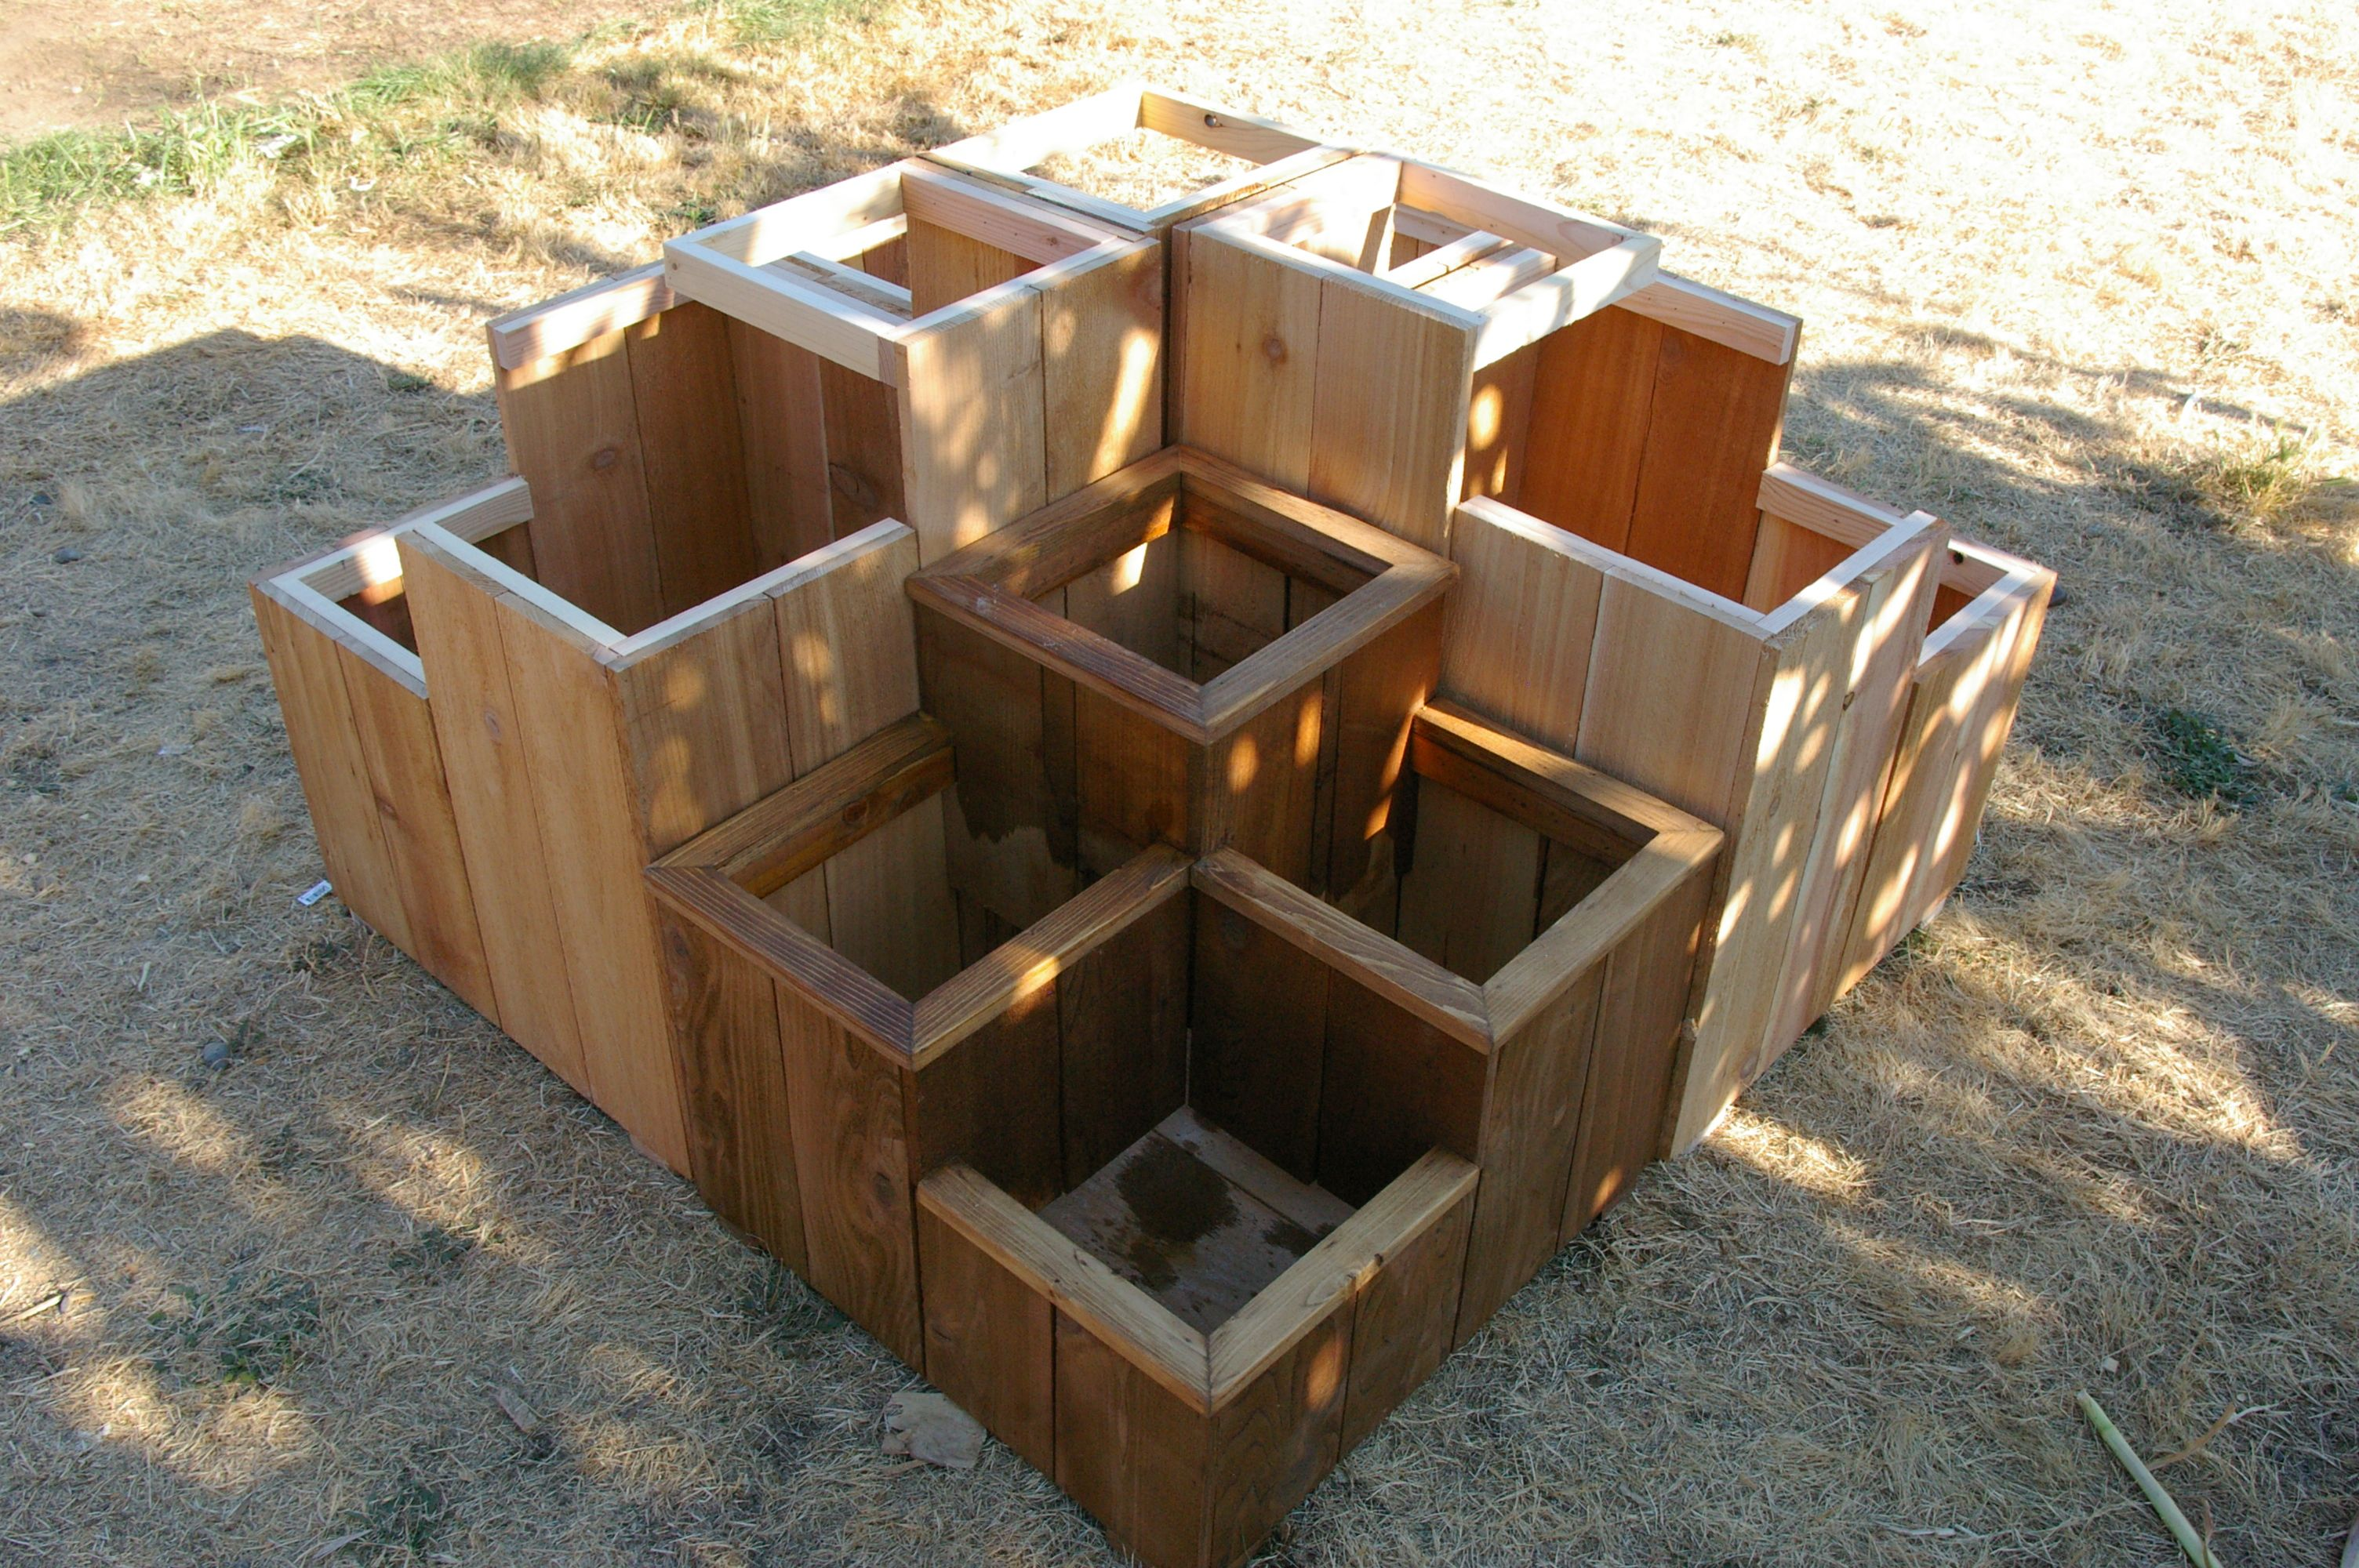 stupendous u to elevated awesome stunning cedar raised rolling rc box boxes planter pots garden